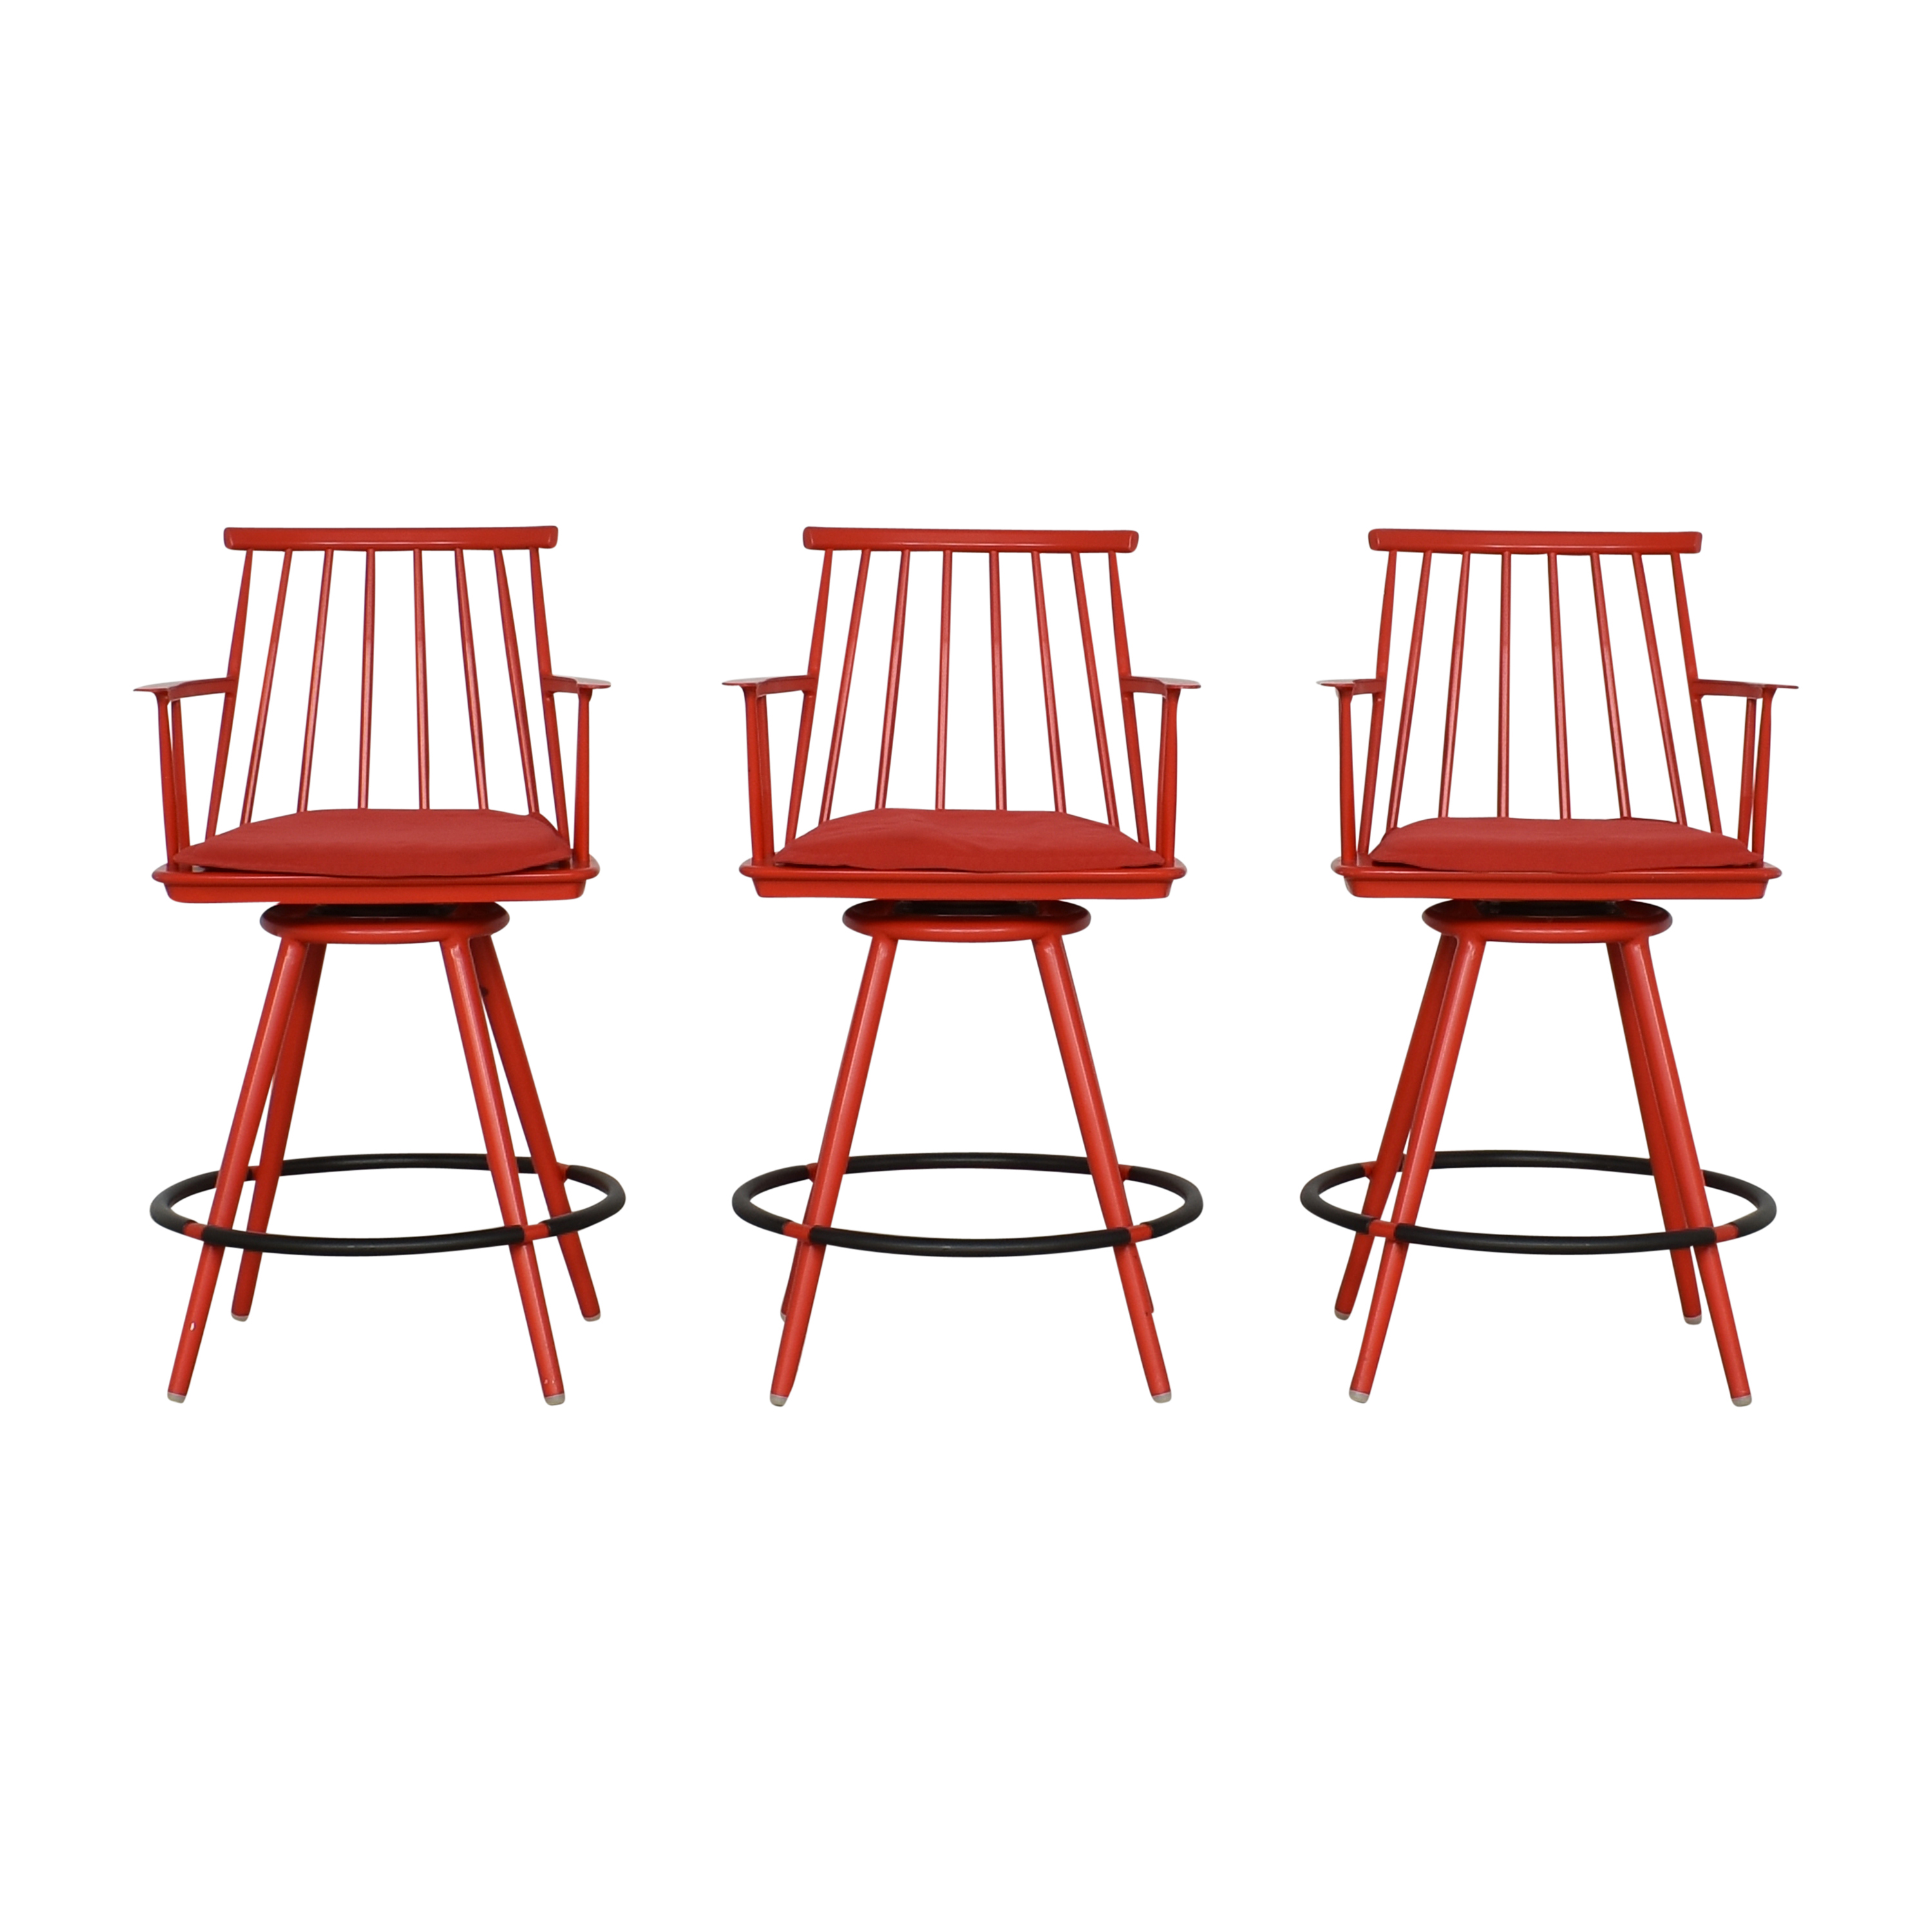 Crate & Barrel Crate & Barrel Union Swivel Counter Stools with Cushions on sale